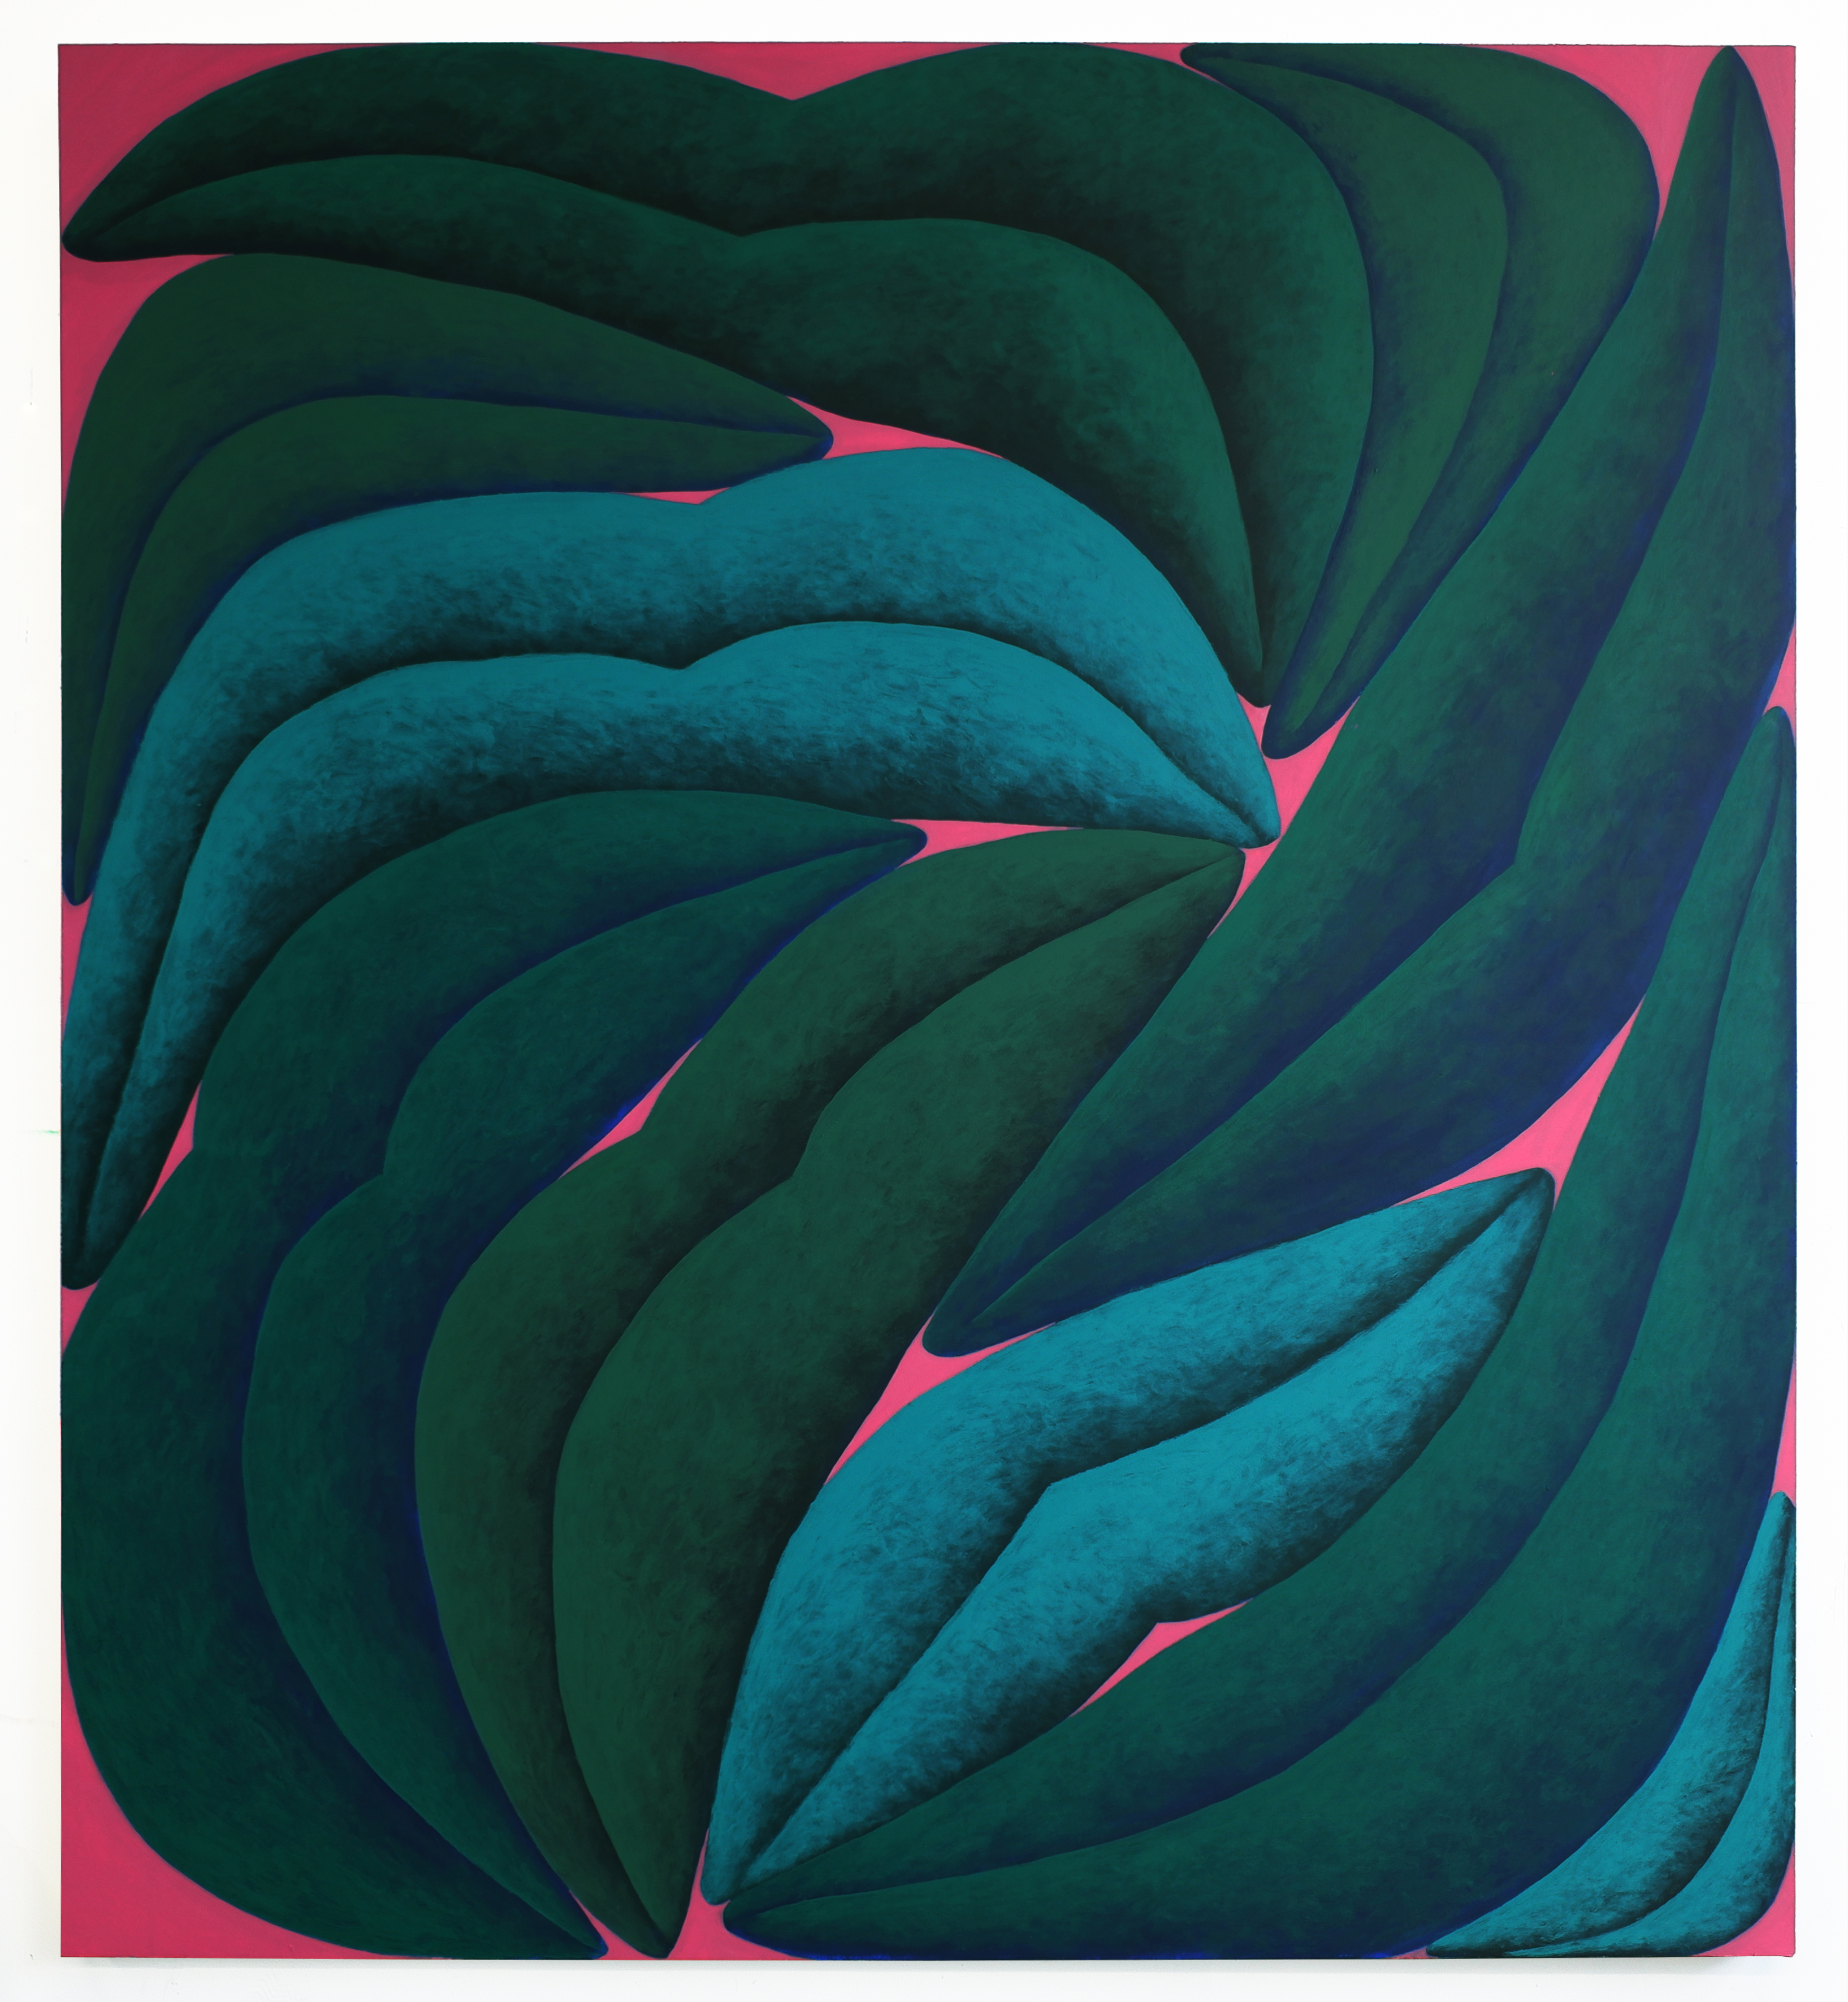 Corydon Cowansage, Green, Turquoise, Pink, 2021, acrylic on canvas, 60 x 54 inches